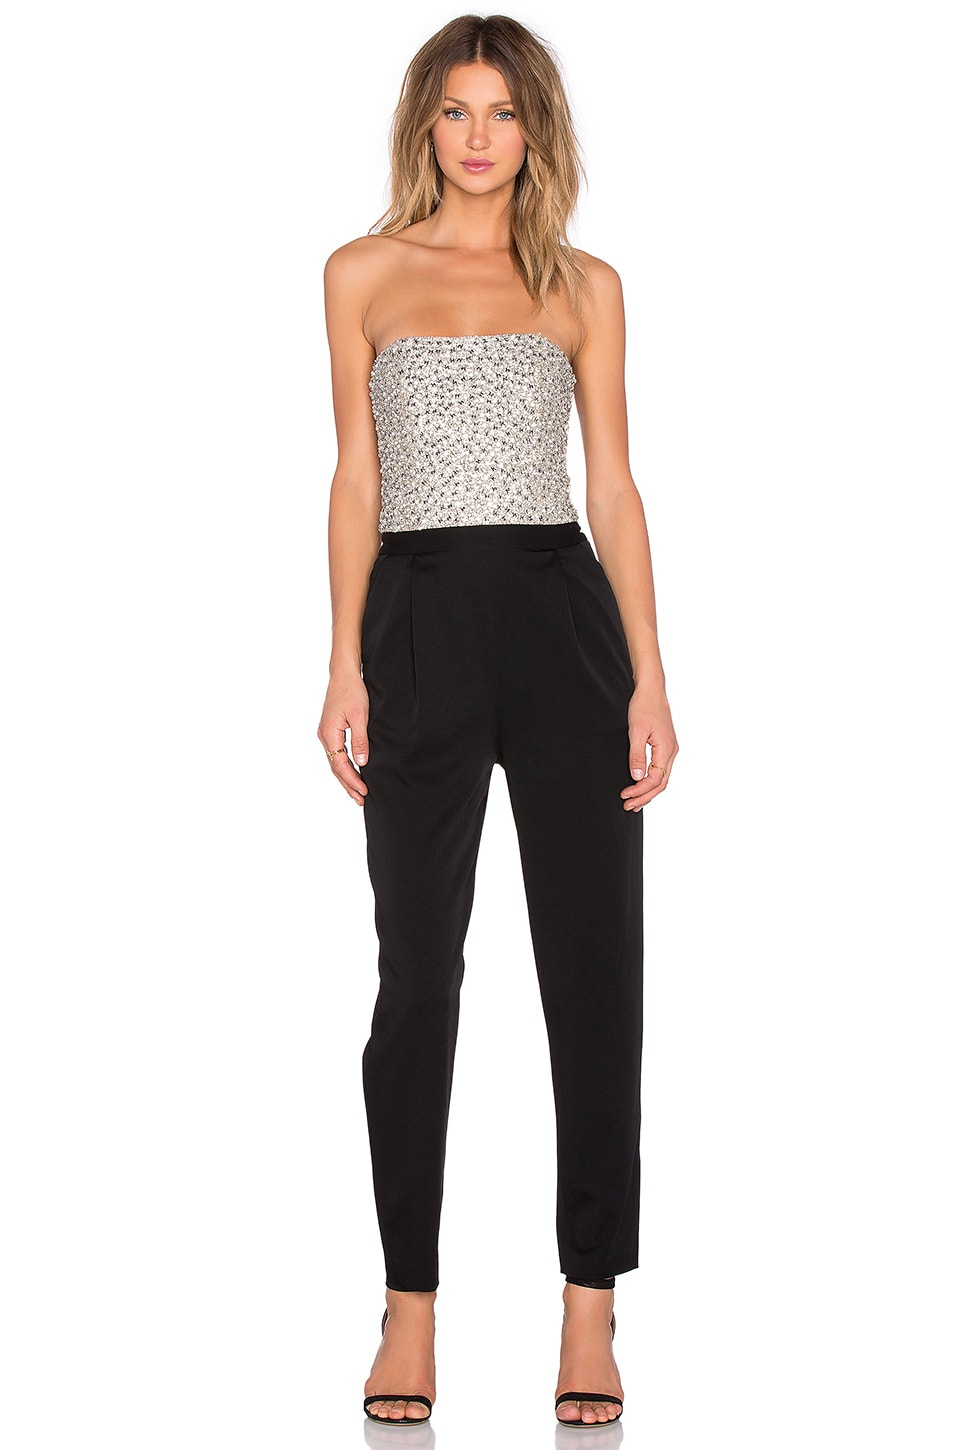 Alice + Olivia Jeri Jumpsuit in Black & Cream